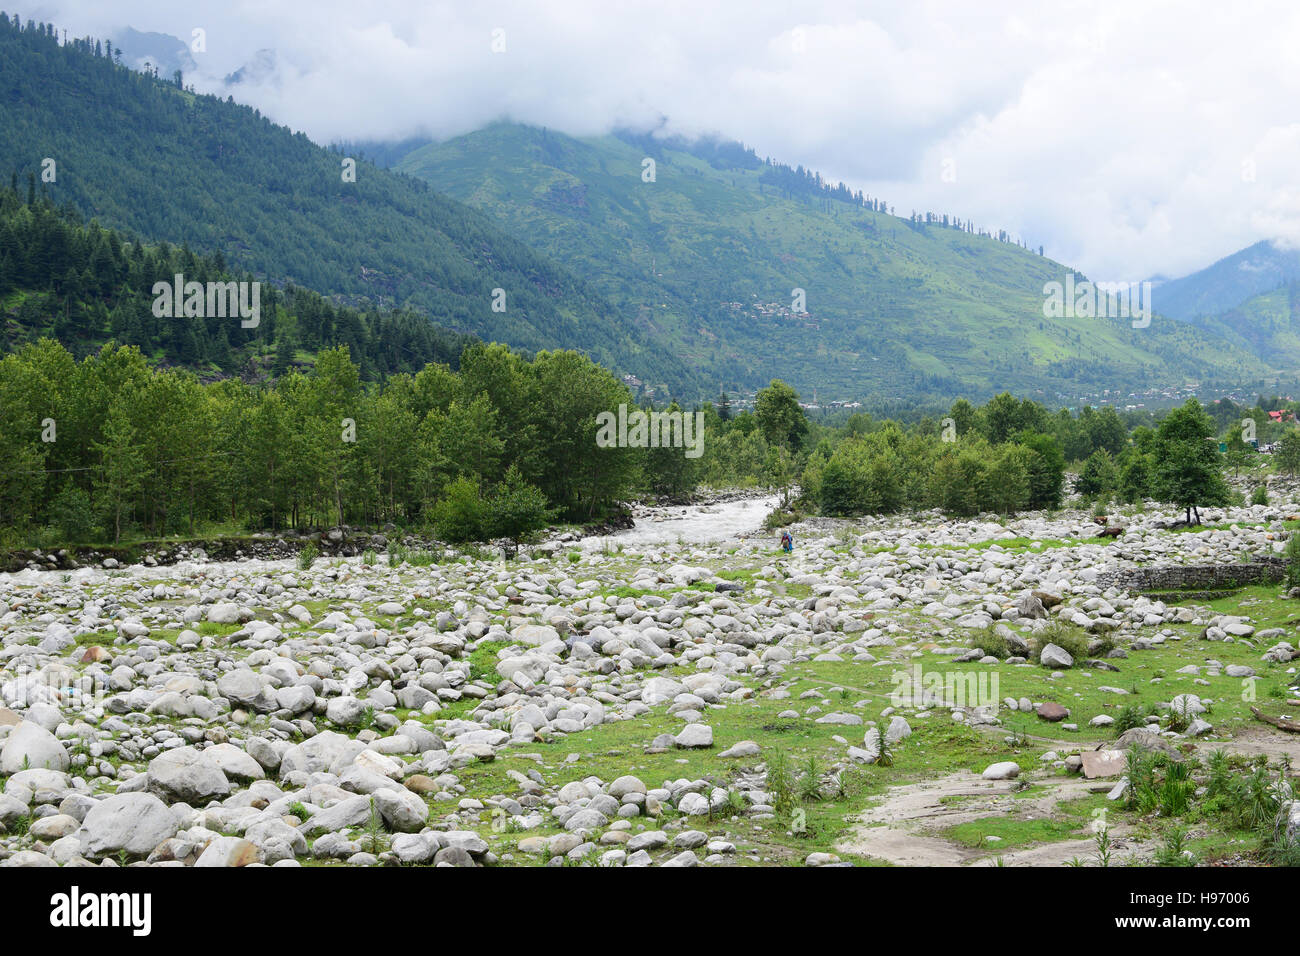 Manali valley in Himachal Pradesh India Tourist destination on the shores of Beas River and Himalayas Mountains - Stock Image